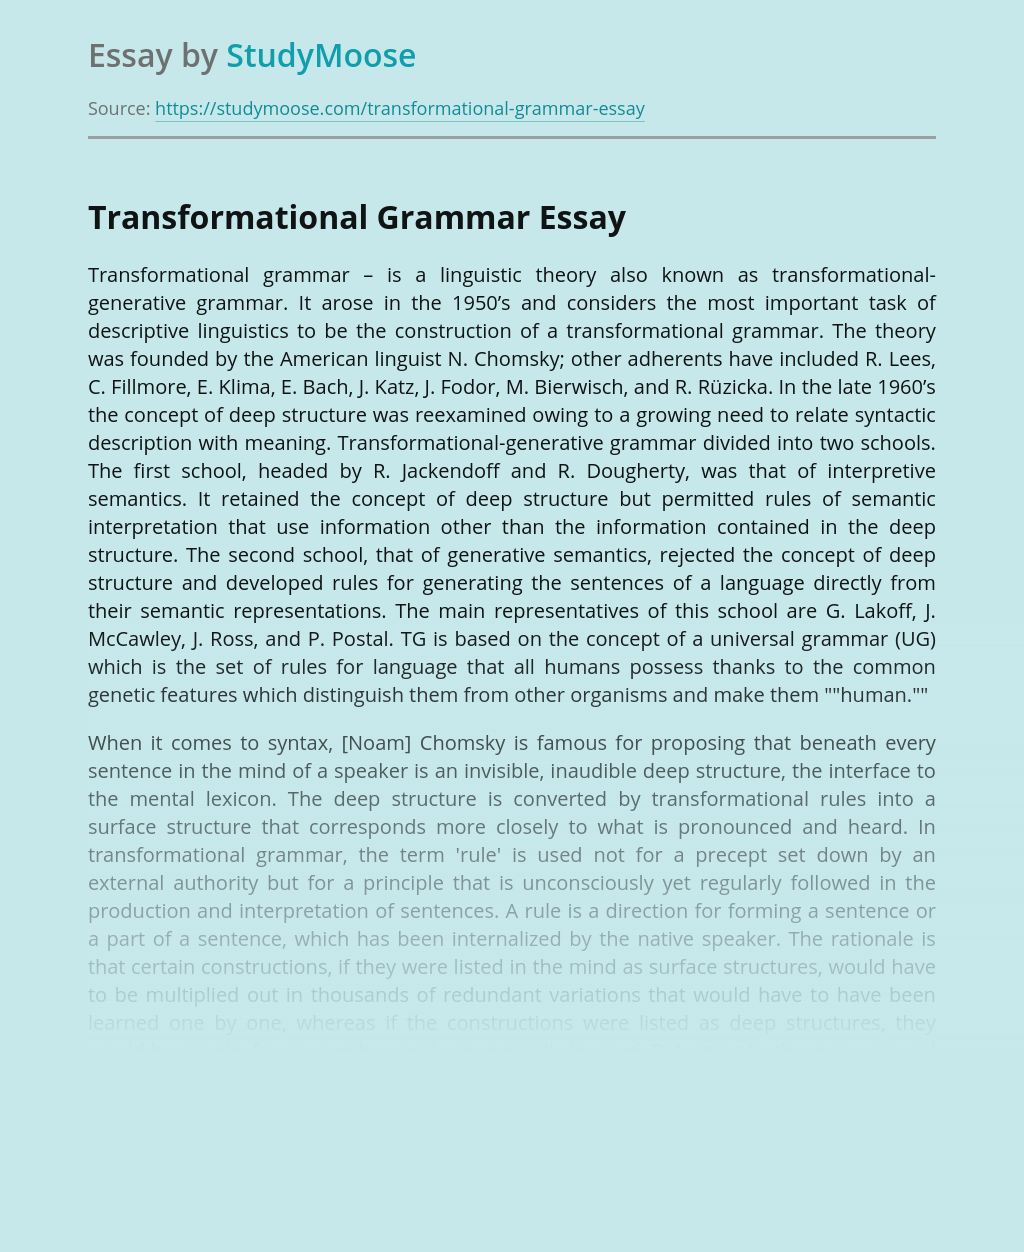 Transformational Grammar